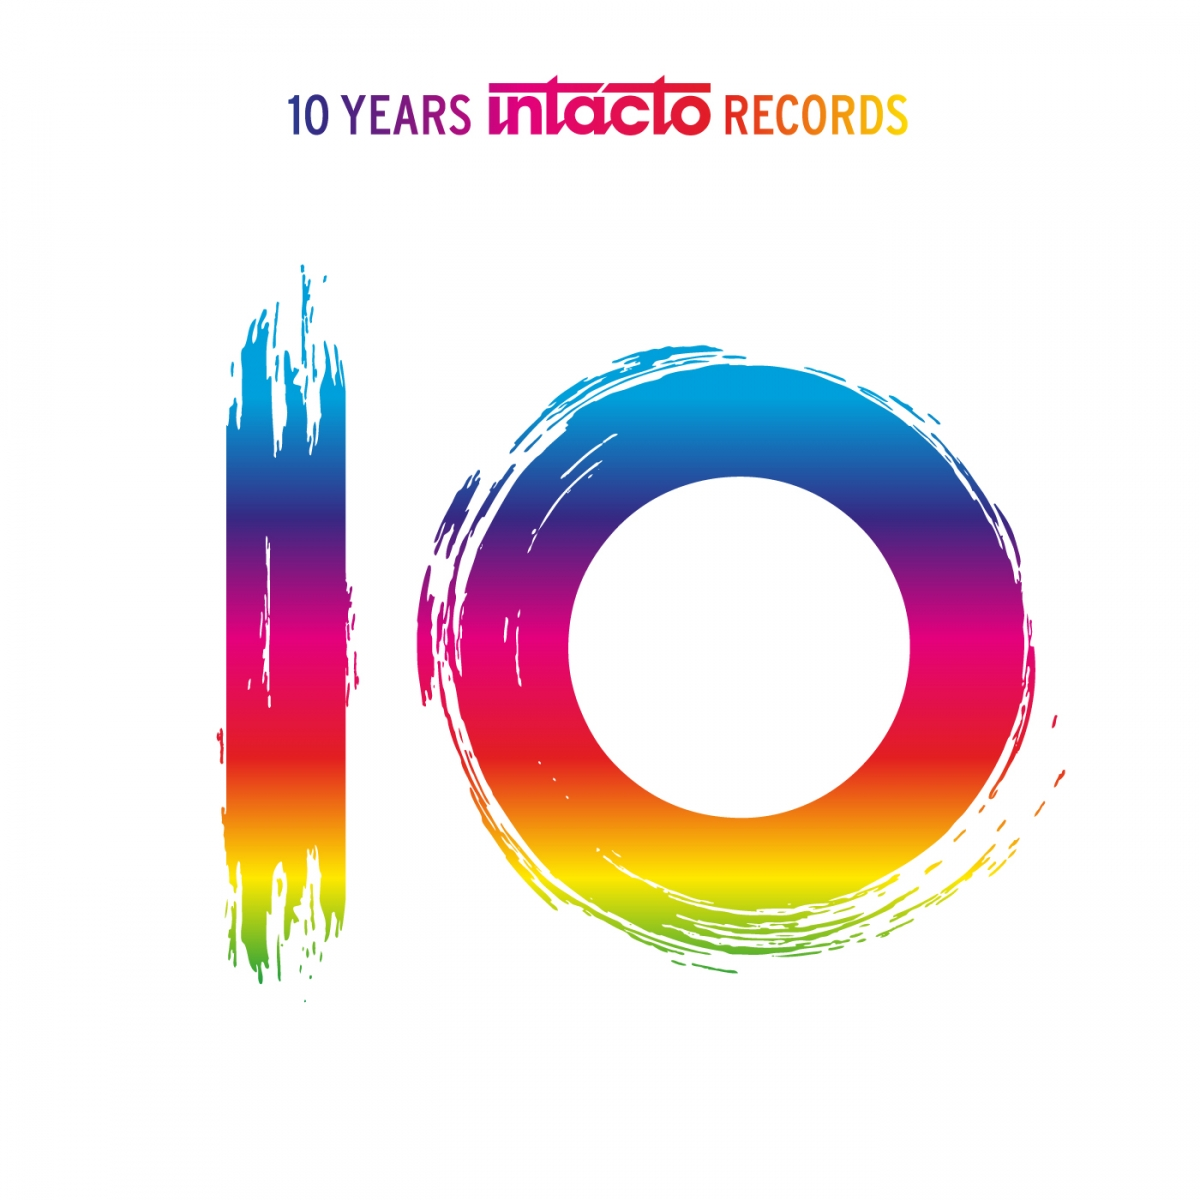 Shinedoe is celebrating 10 Years Intacto Records